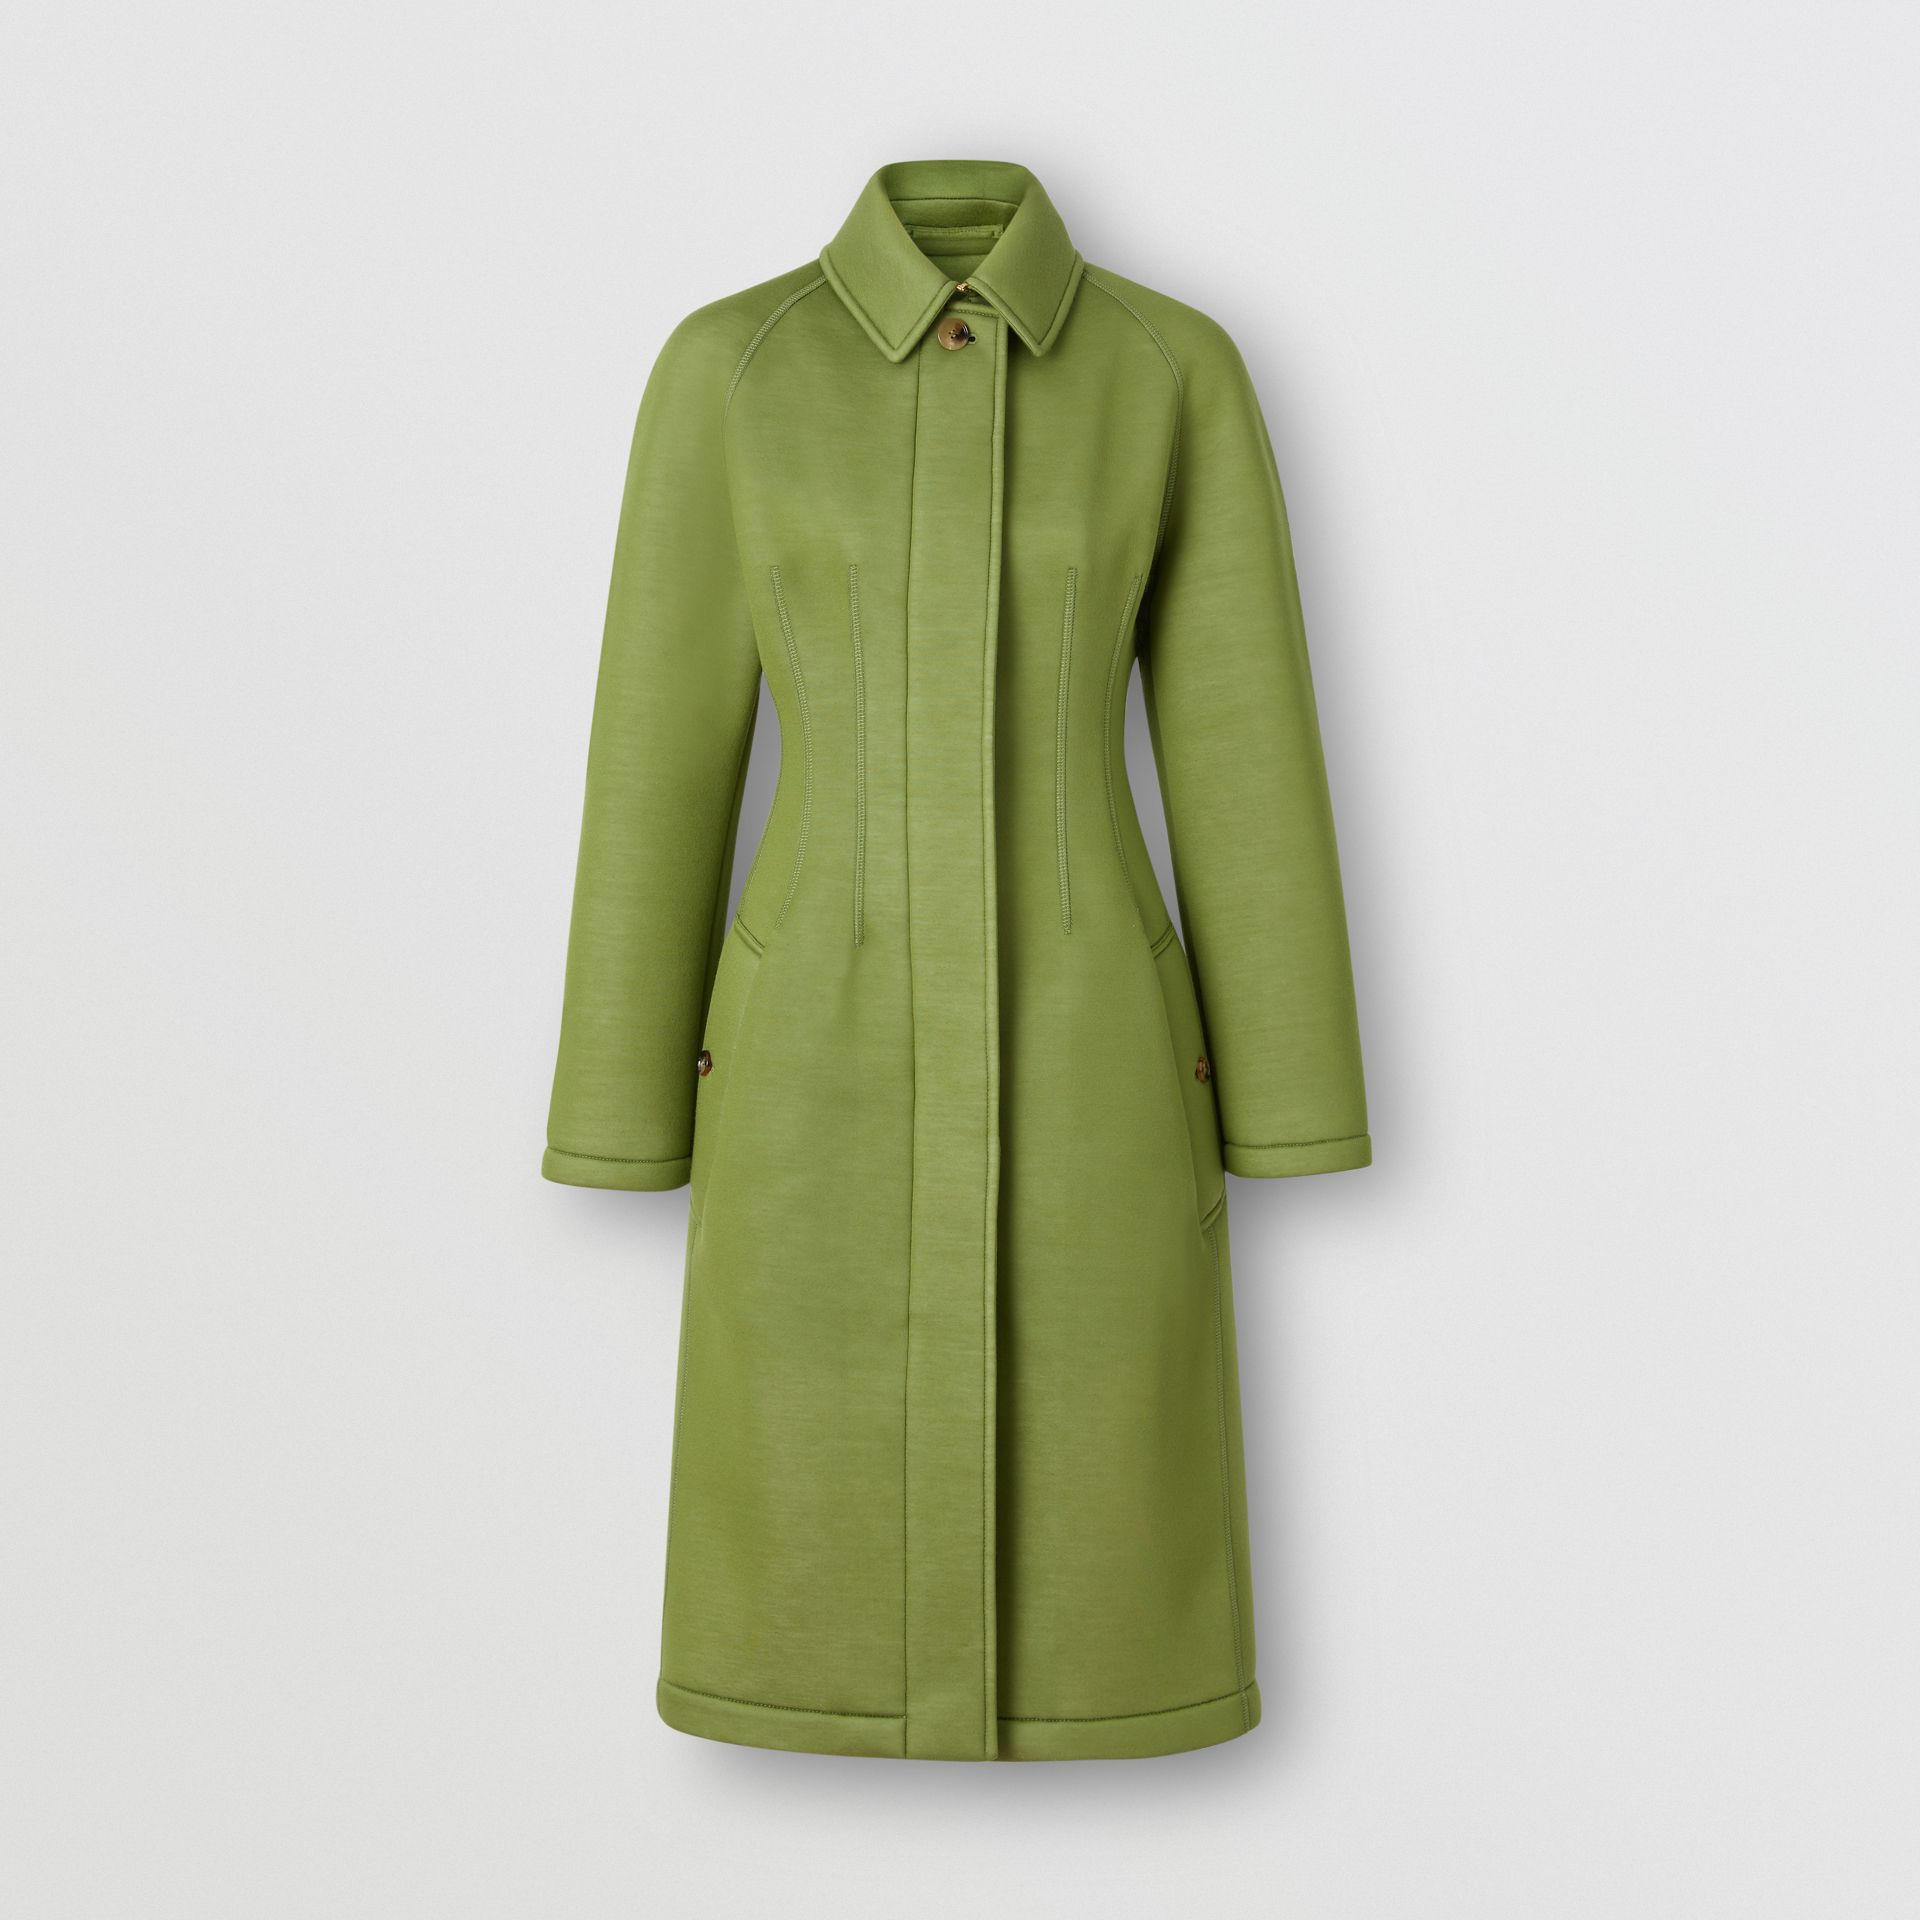 Bonded Neoprene Tailored Car Coat in Cedar Green - Women | Burberry - gallery image 3